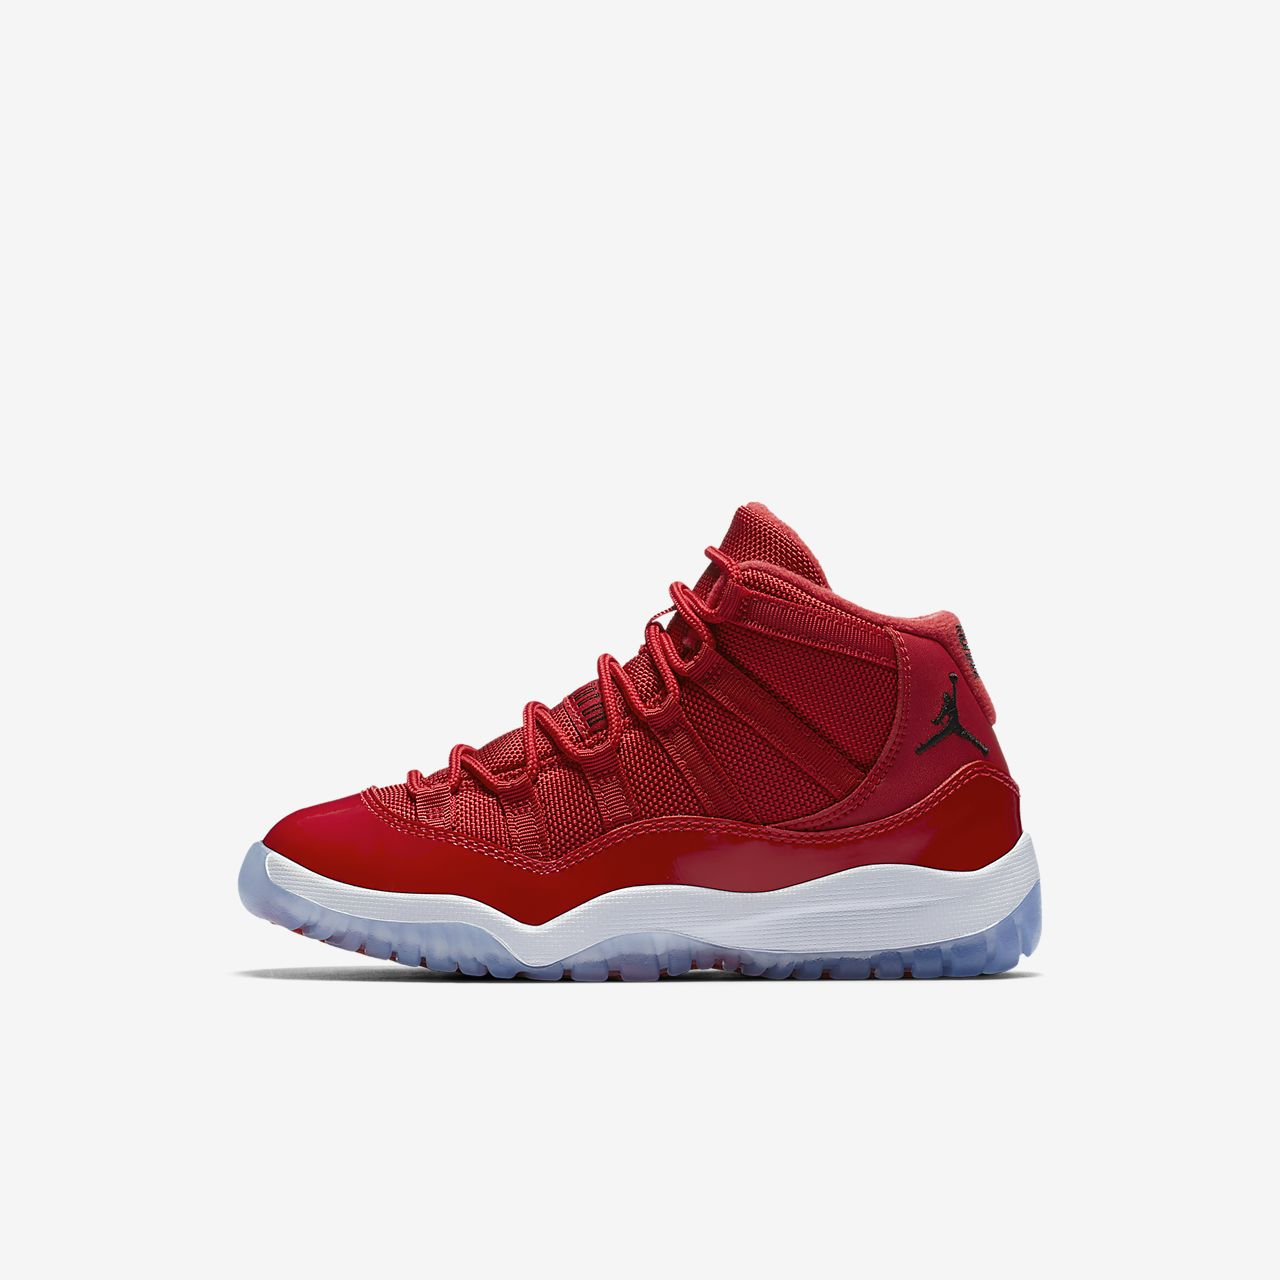 Nike Air Jordan XI Retro Three-Quarter Boys Jordan Shoes Red/White/Black dZ6690C